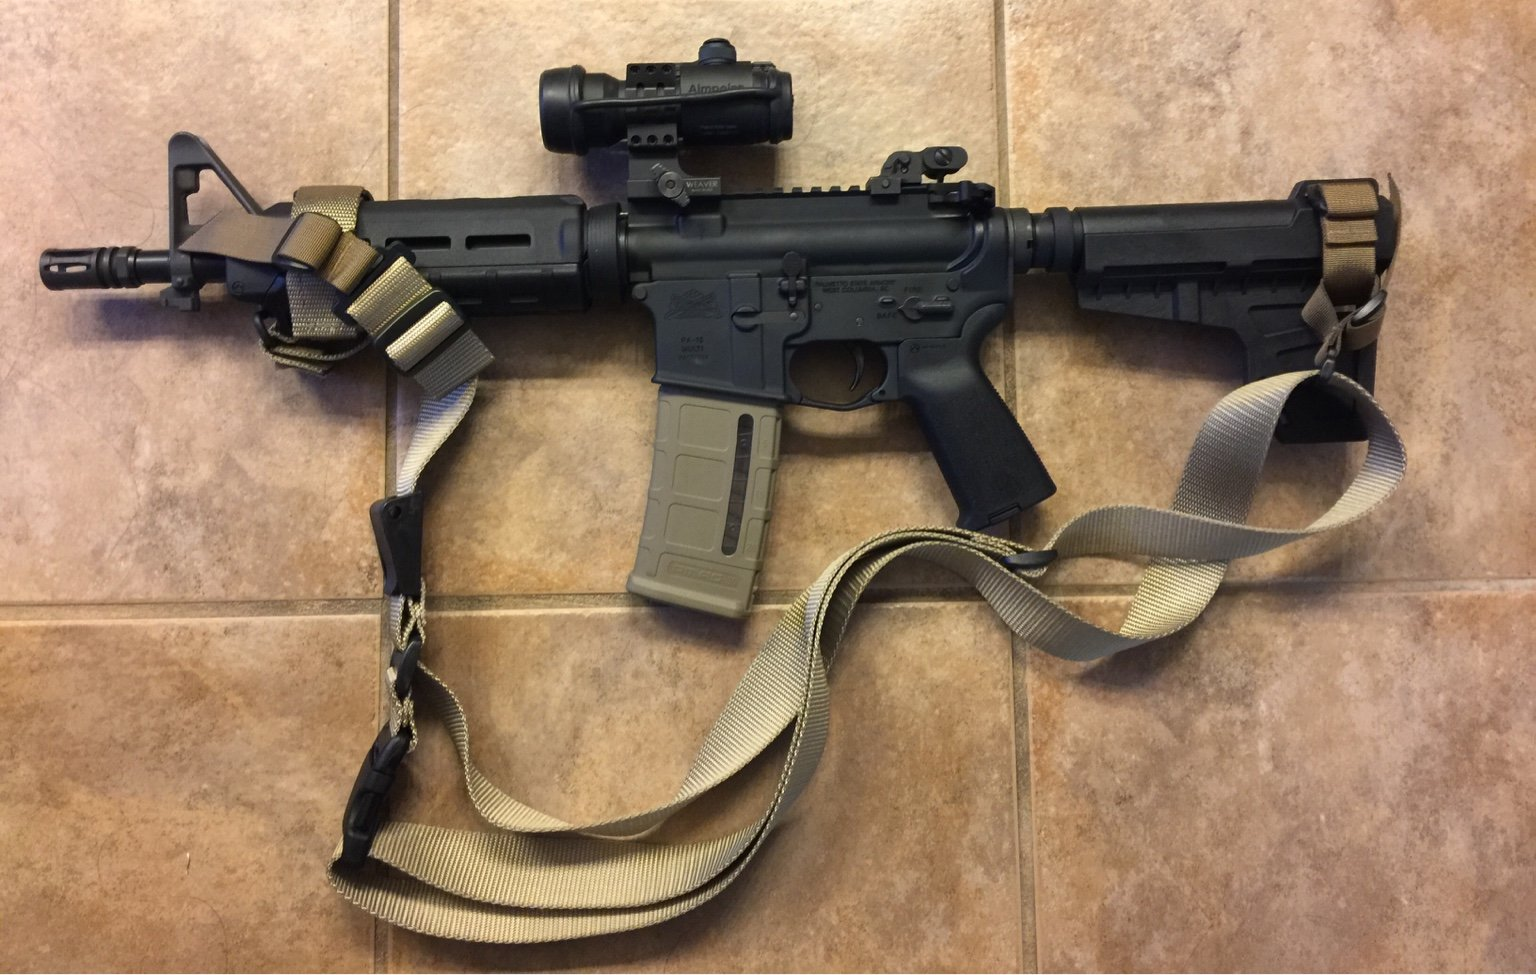 70ec72c2ae20 Benefit to Adding an 11.5 or 12.5 Pistol?